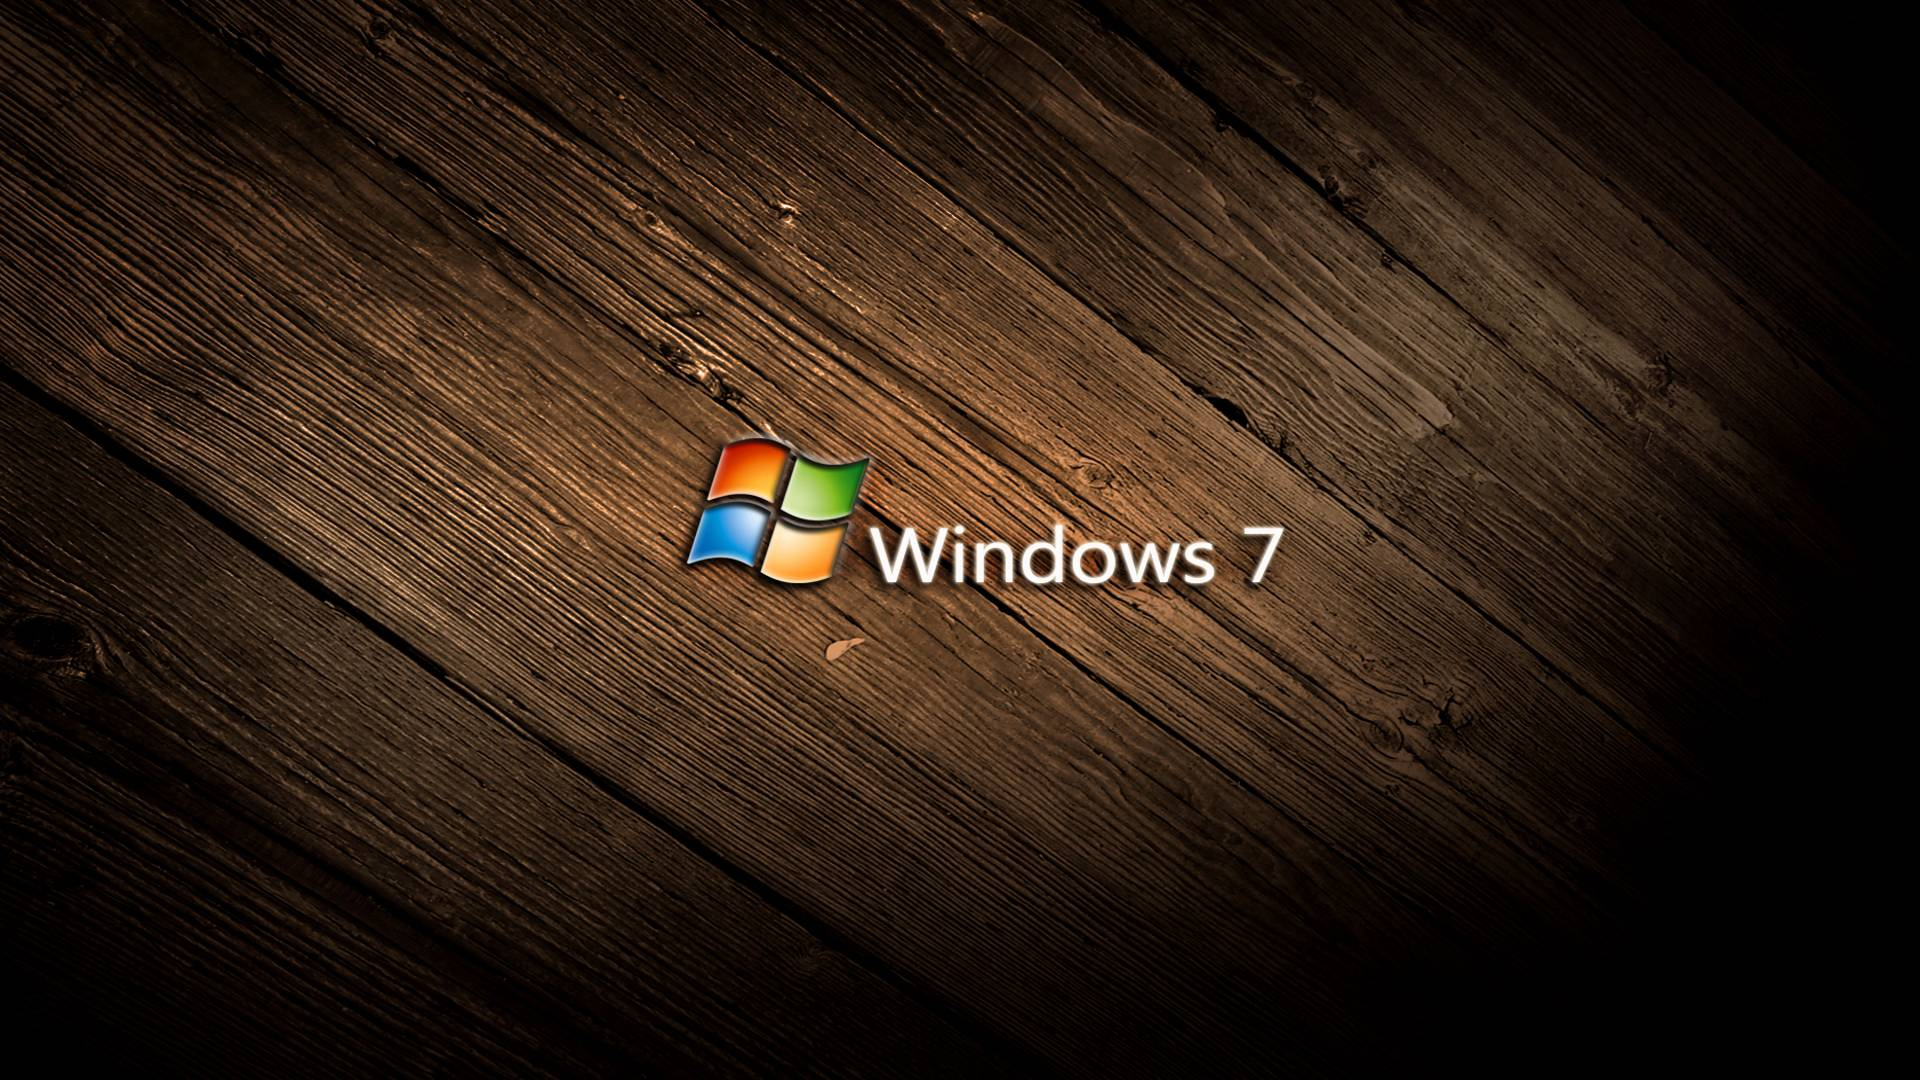 Cool Wallpapers For Windows 7